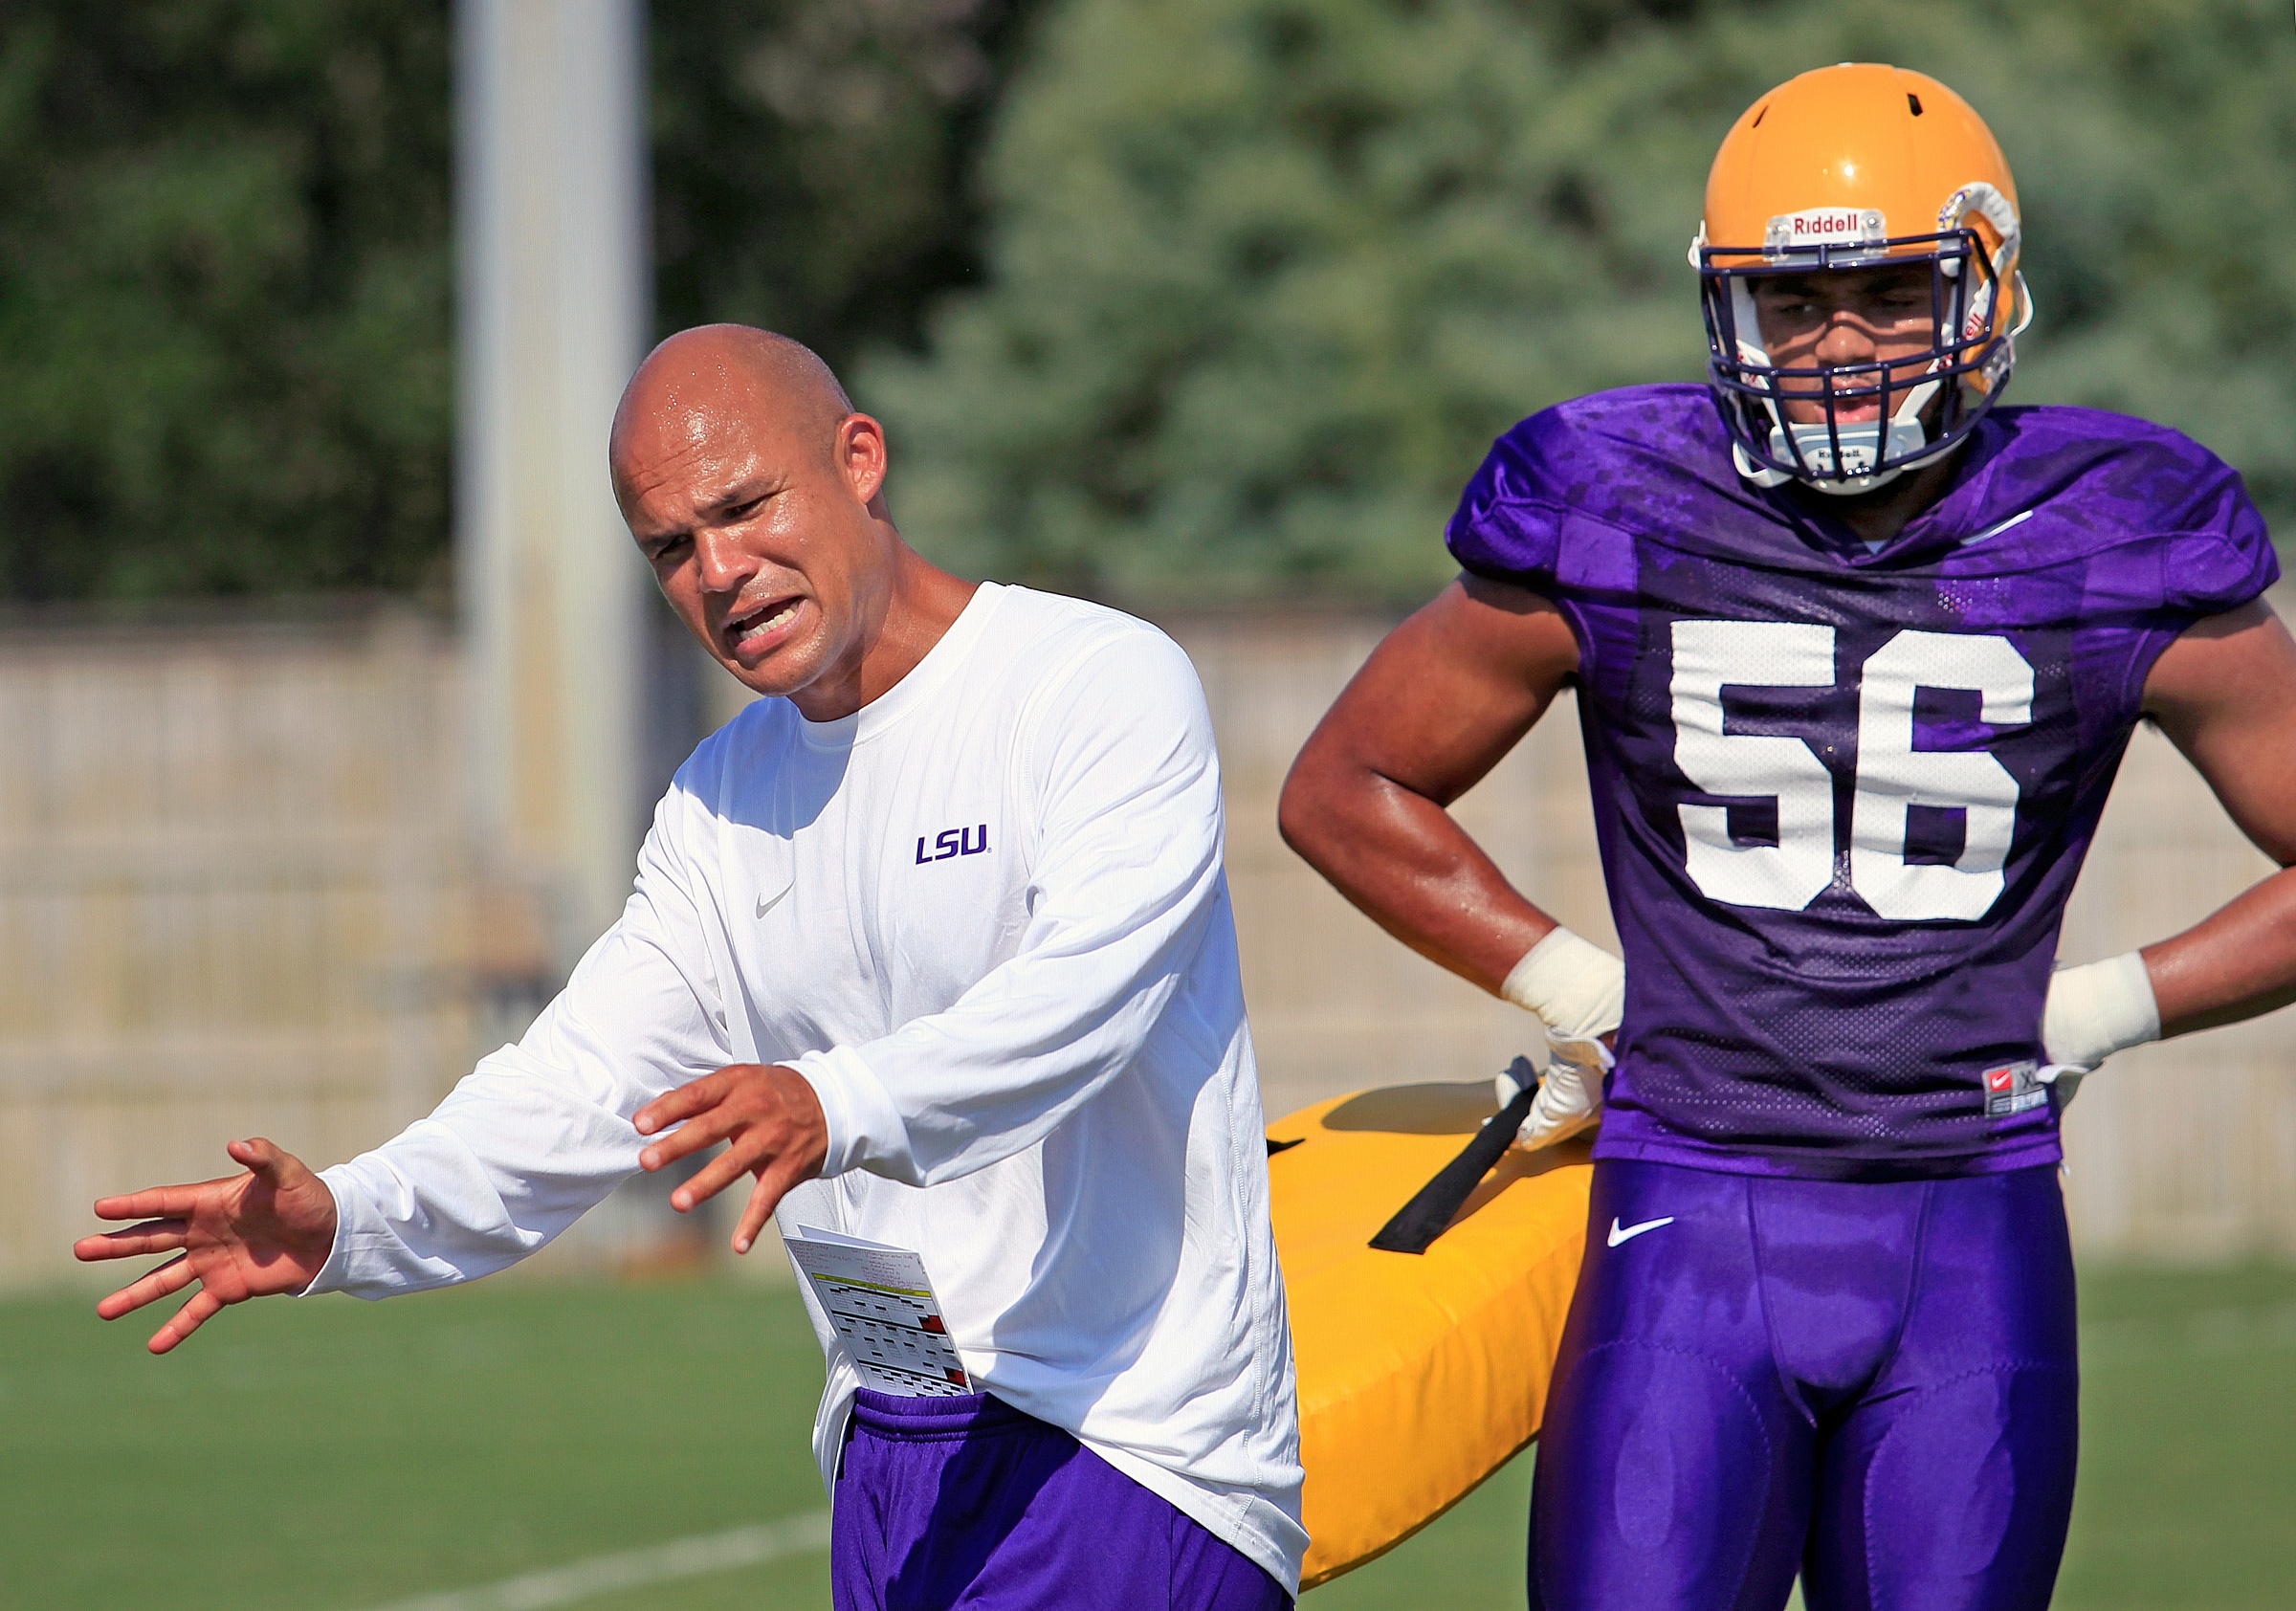 In this Aug. 6, 2016, photo, LSU defensive coordinator Dave Aranda gives instructions to Tigers M.J. Patterson during an NCAA college football practice in Baton Rouge, La.  Wisconsin's marquee season opener on Saturday against No. 5 LSU features a unique